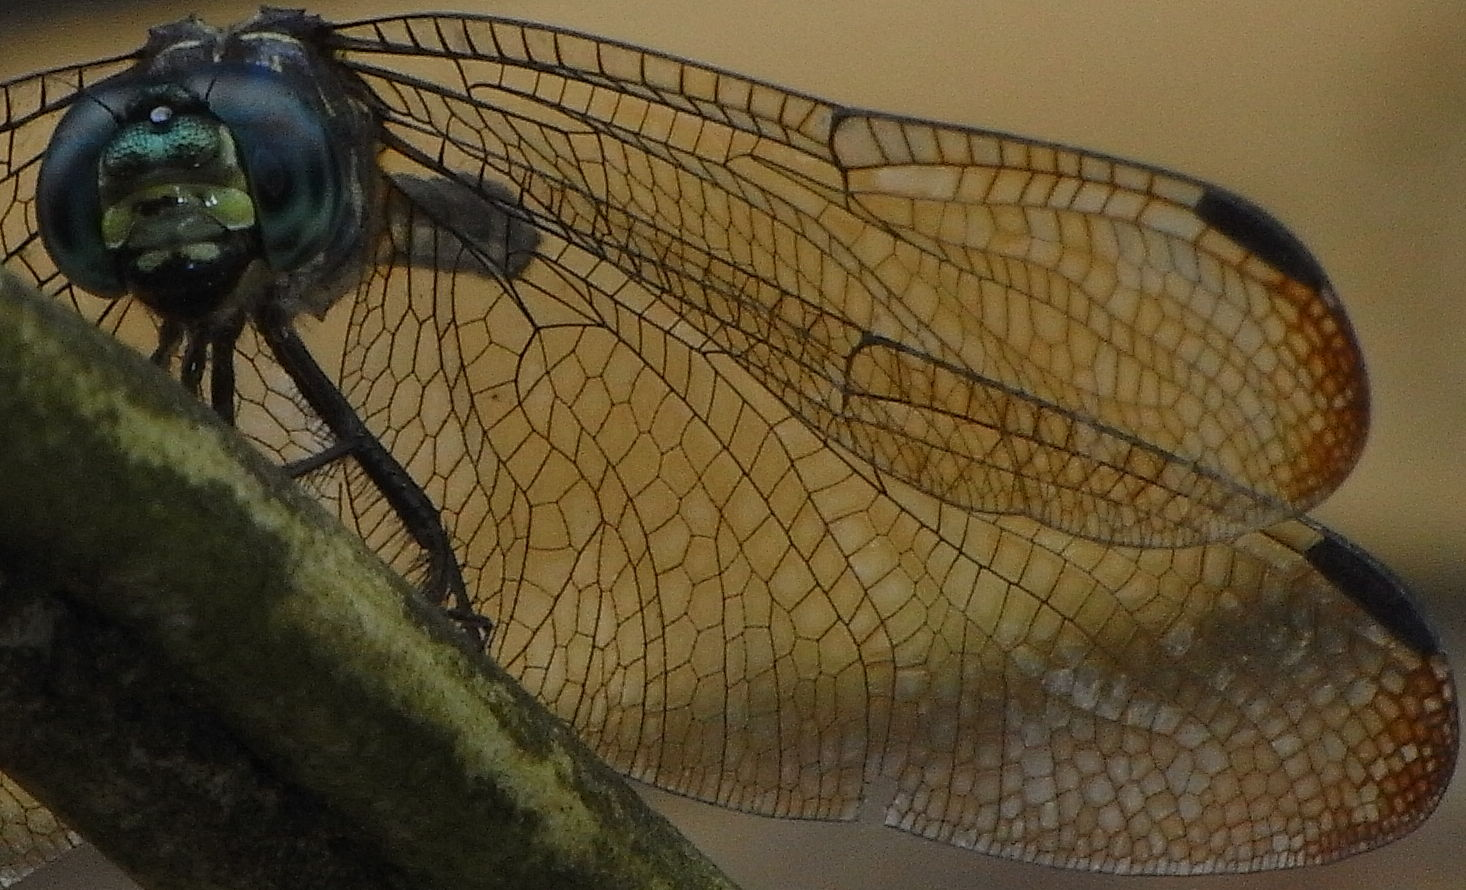 The wing of a Dragonfly